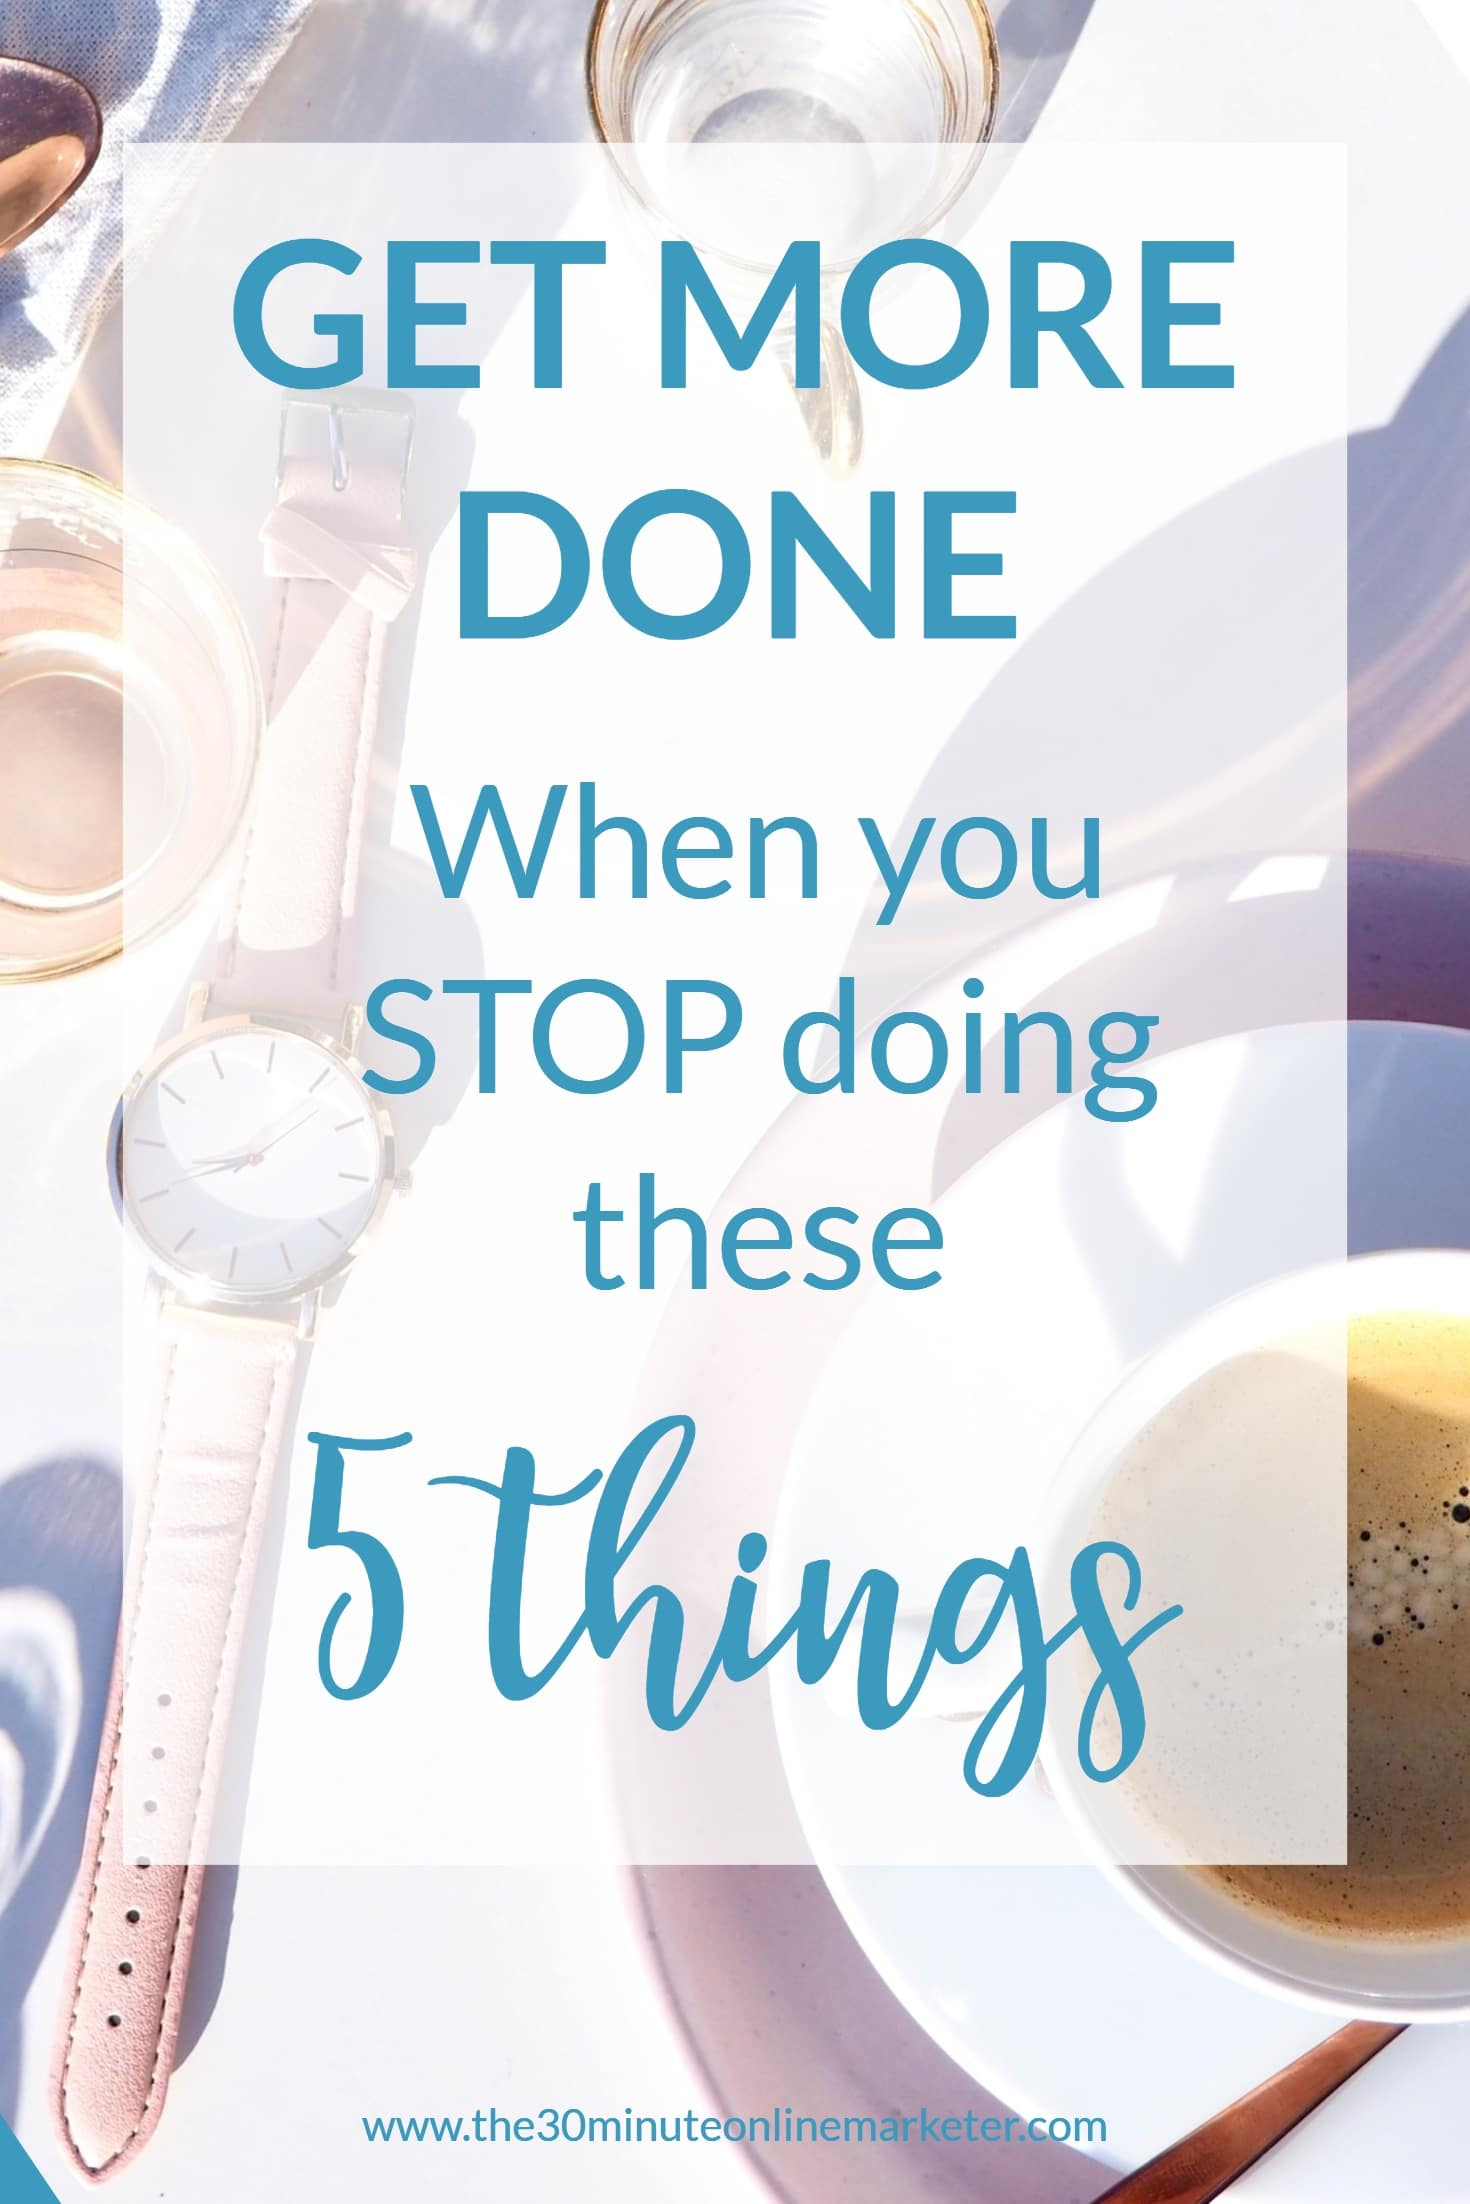 5 things you should stop doing to get more done